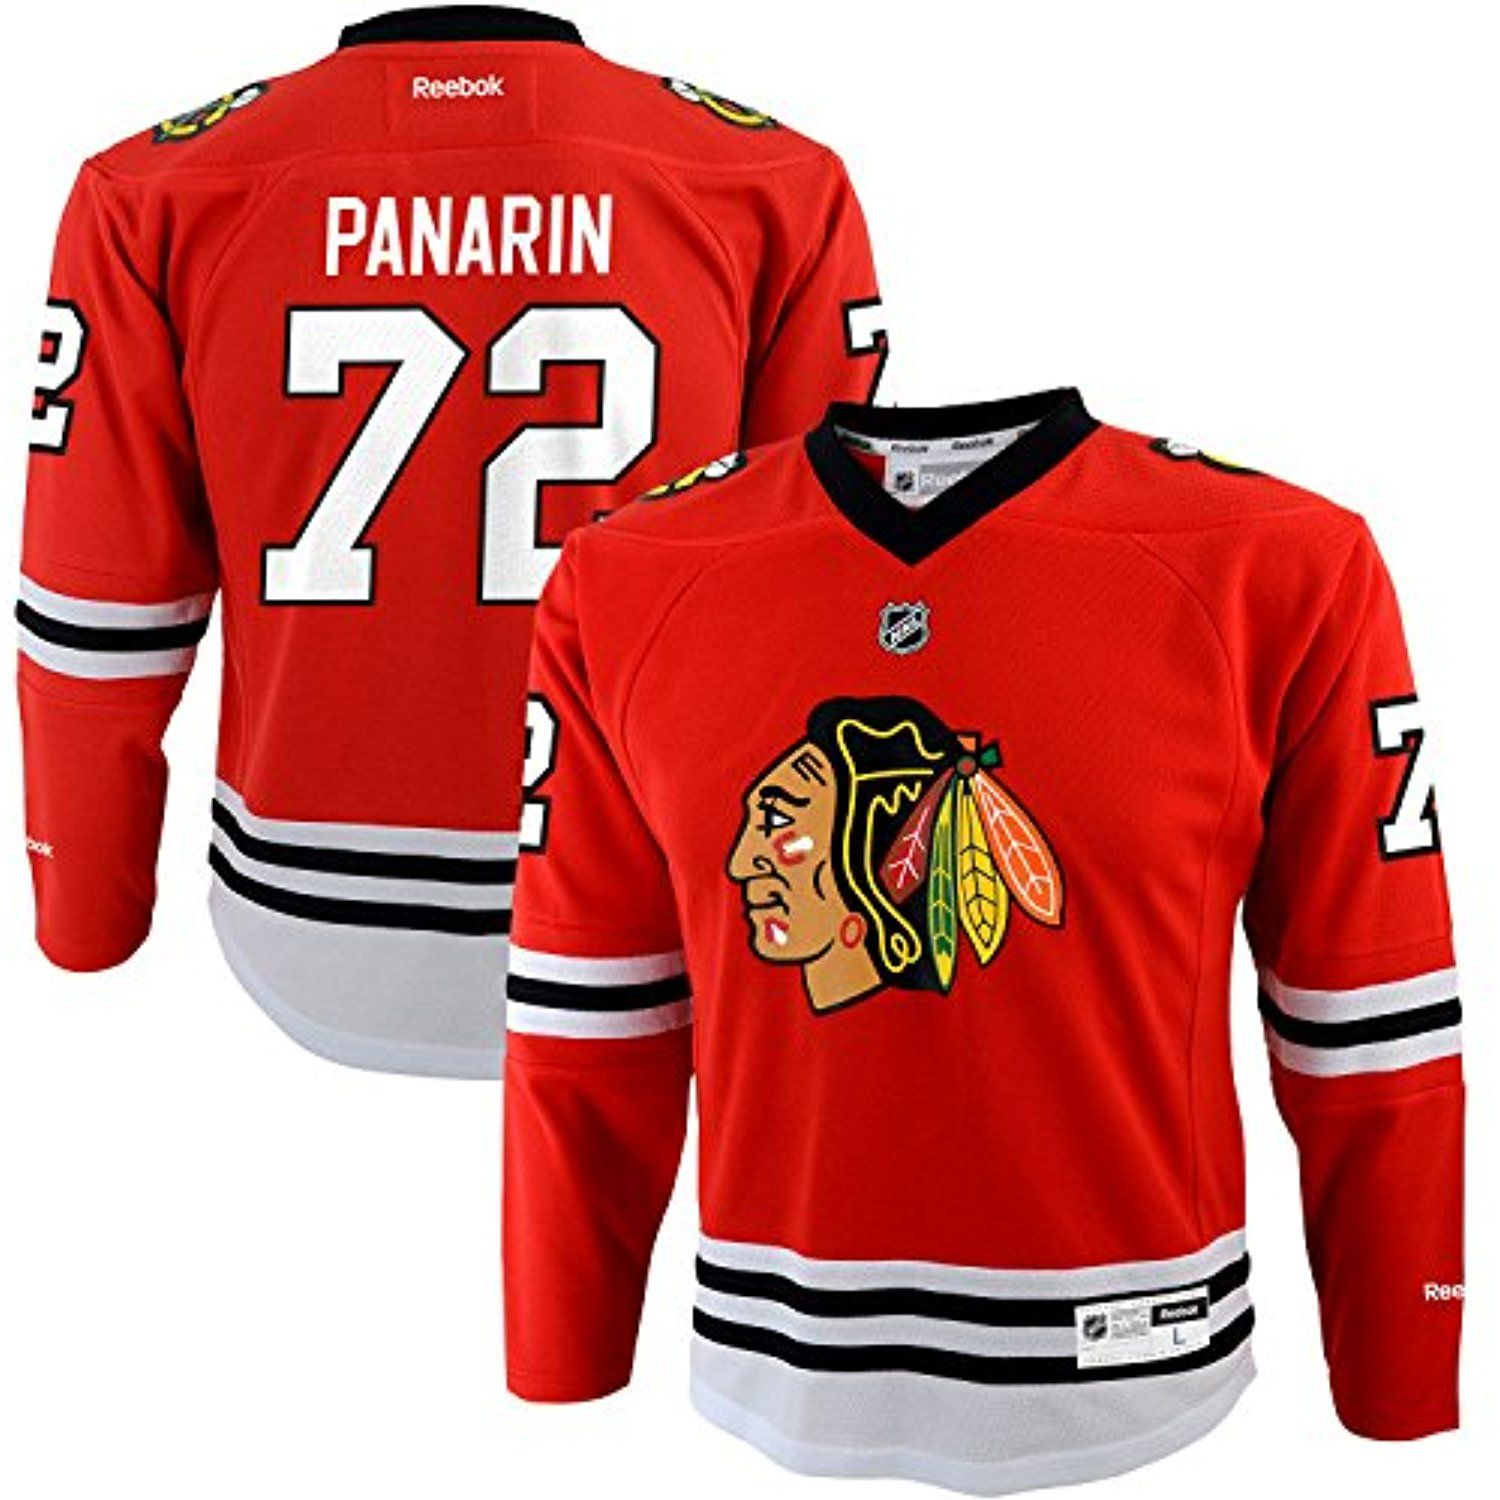 Artemi Panarin Chicago Blackhawks Red Youth Replica Jersey   Check this  awesome product by going to 69c2d9f41